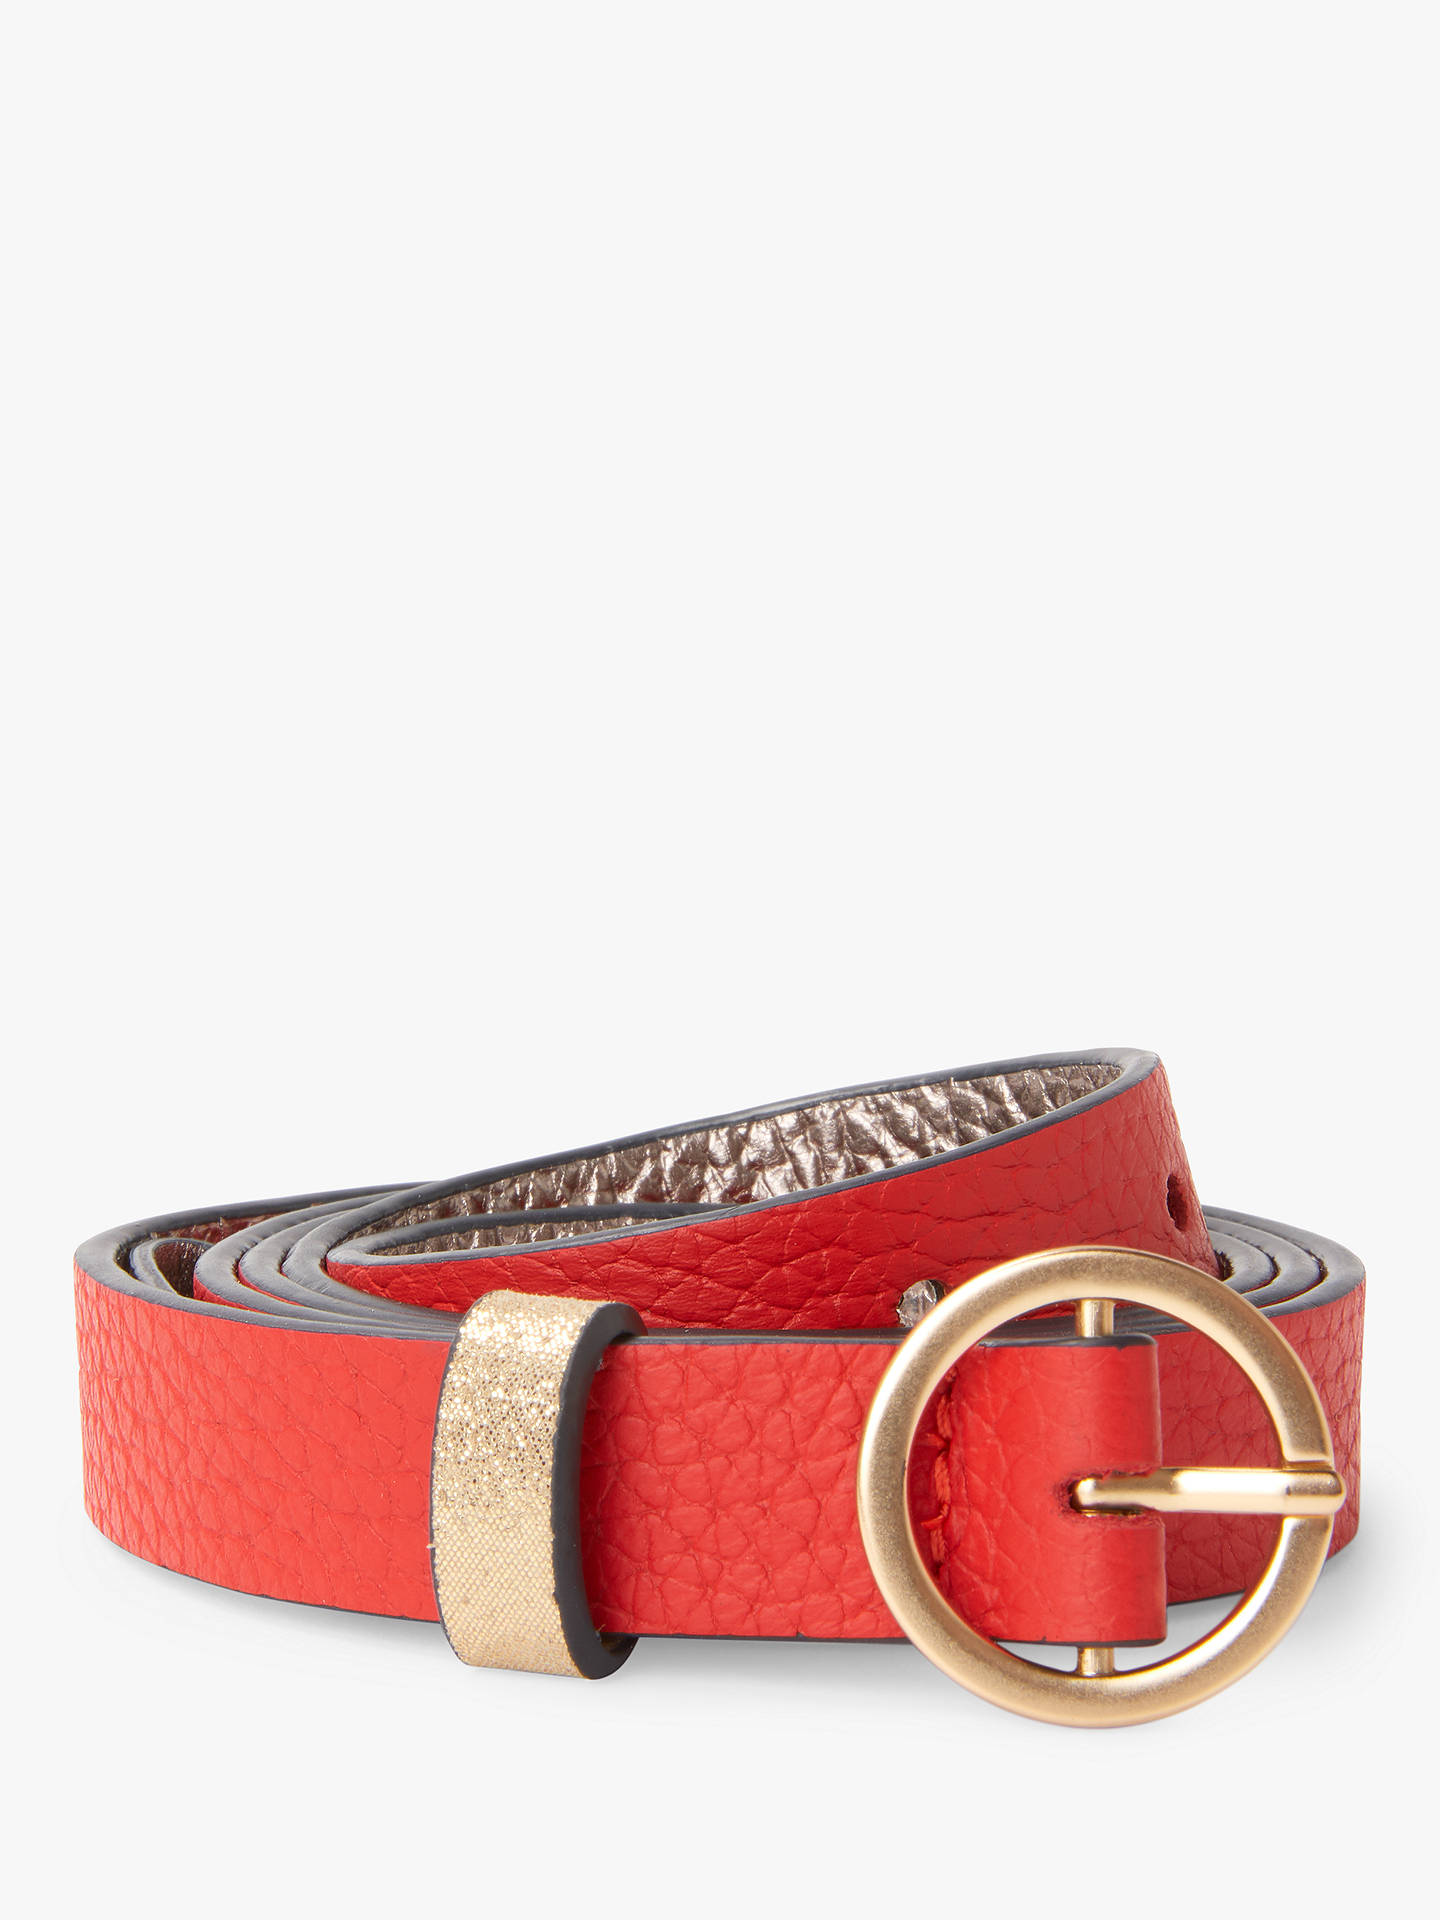 BuyBoden Leather Skinny Belt, Post Box Red, XS Online at johnlewis.com